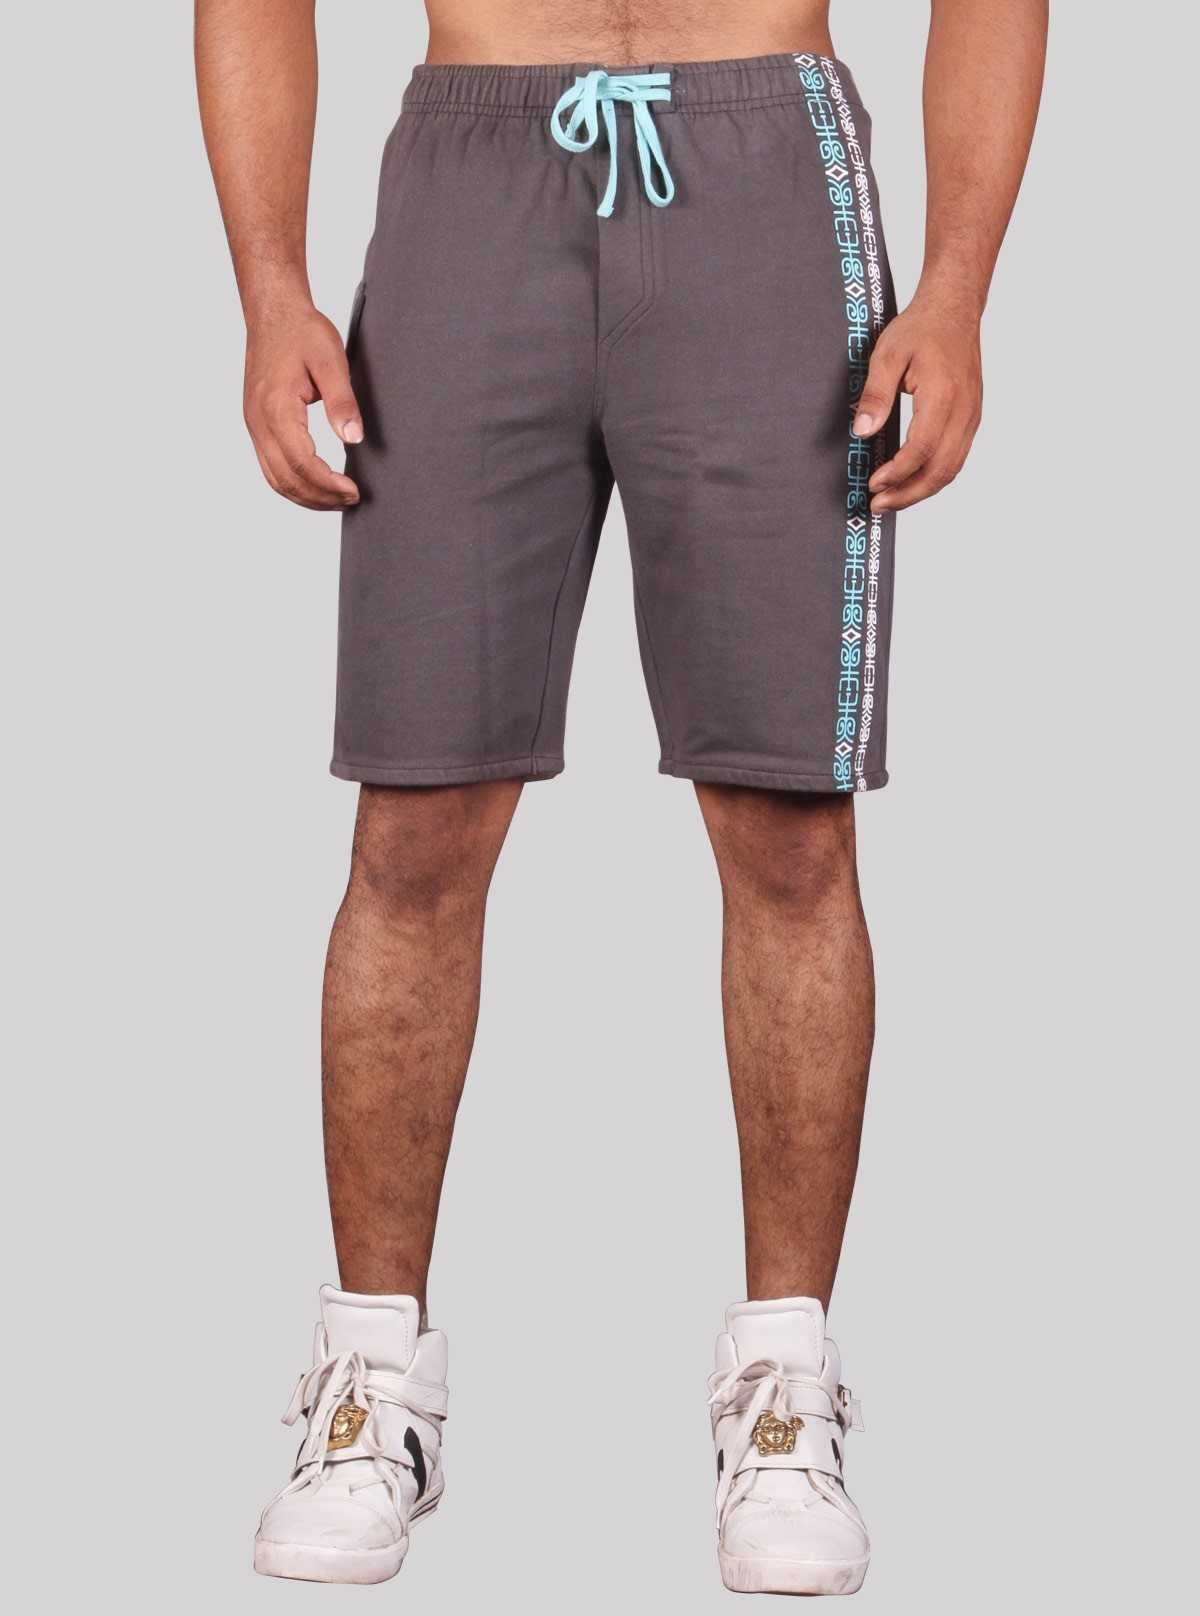 Grey Printed Fleece Shorts Boer and Fitch - 1